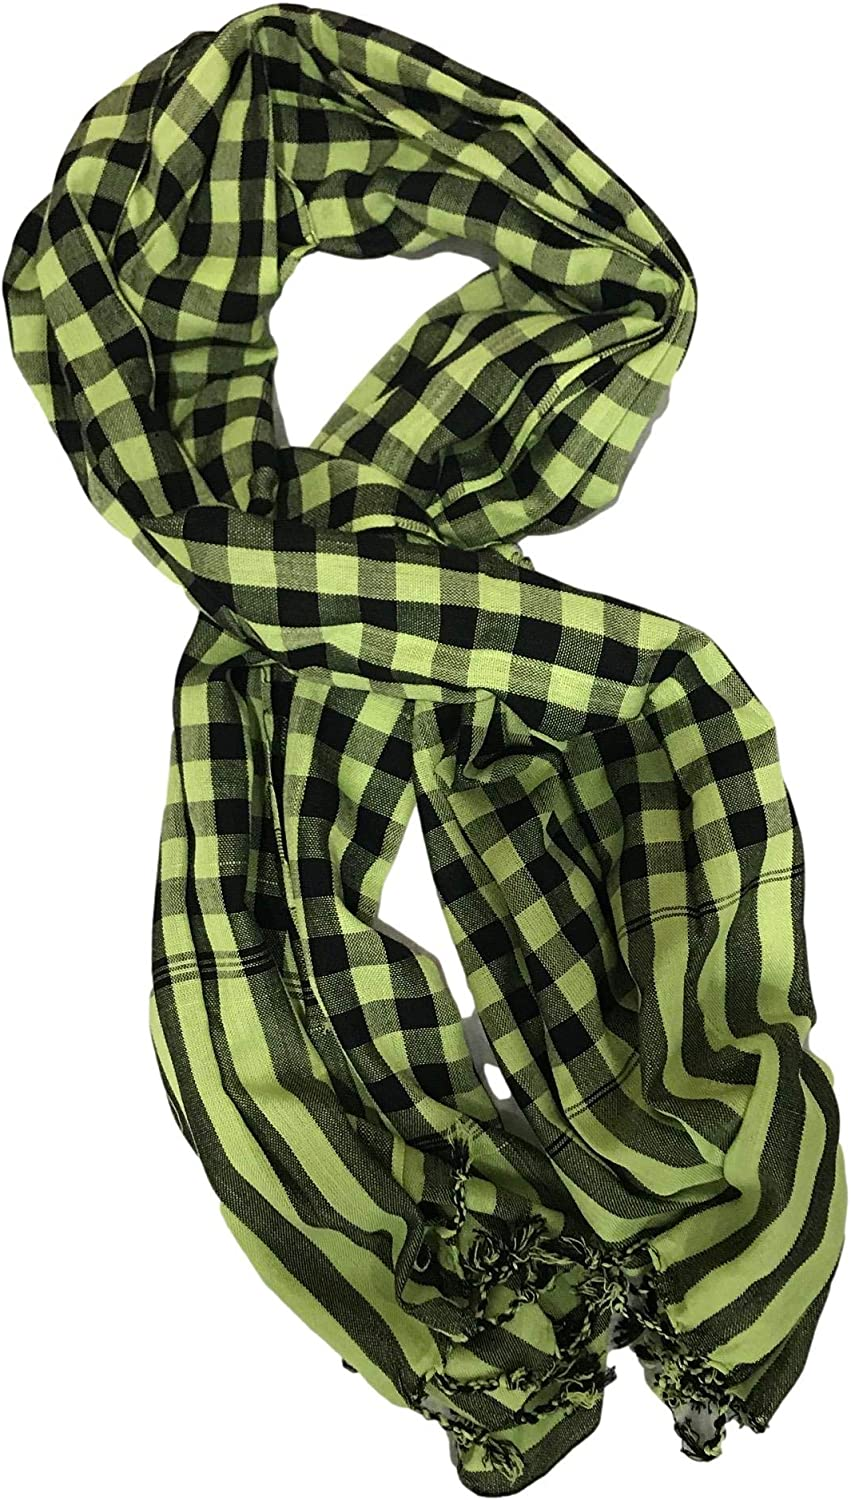 Cotton Handmade Colorful Super Soft Plaid Scarf Wrap with Fringe Ends Medium 29x67 Fashion Accessory for Women and Men Unisex